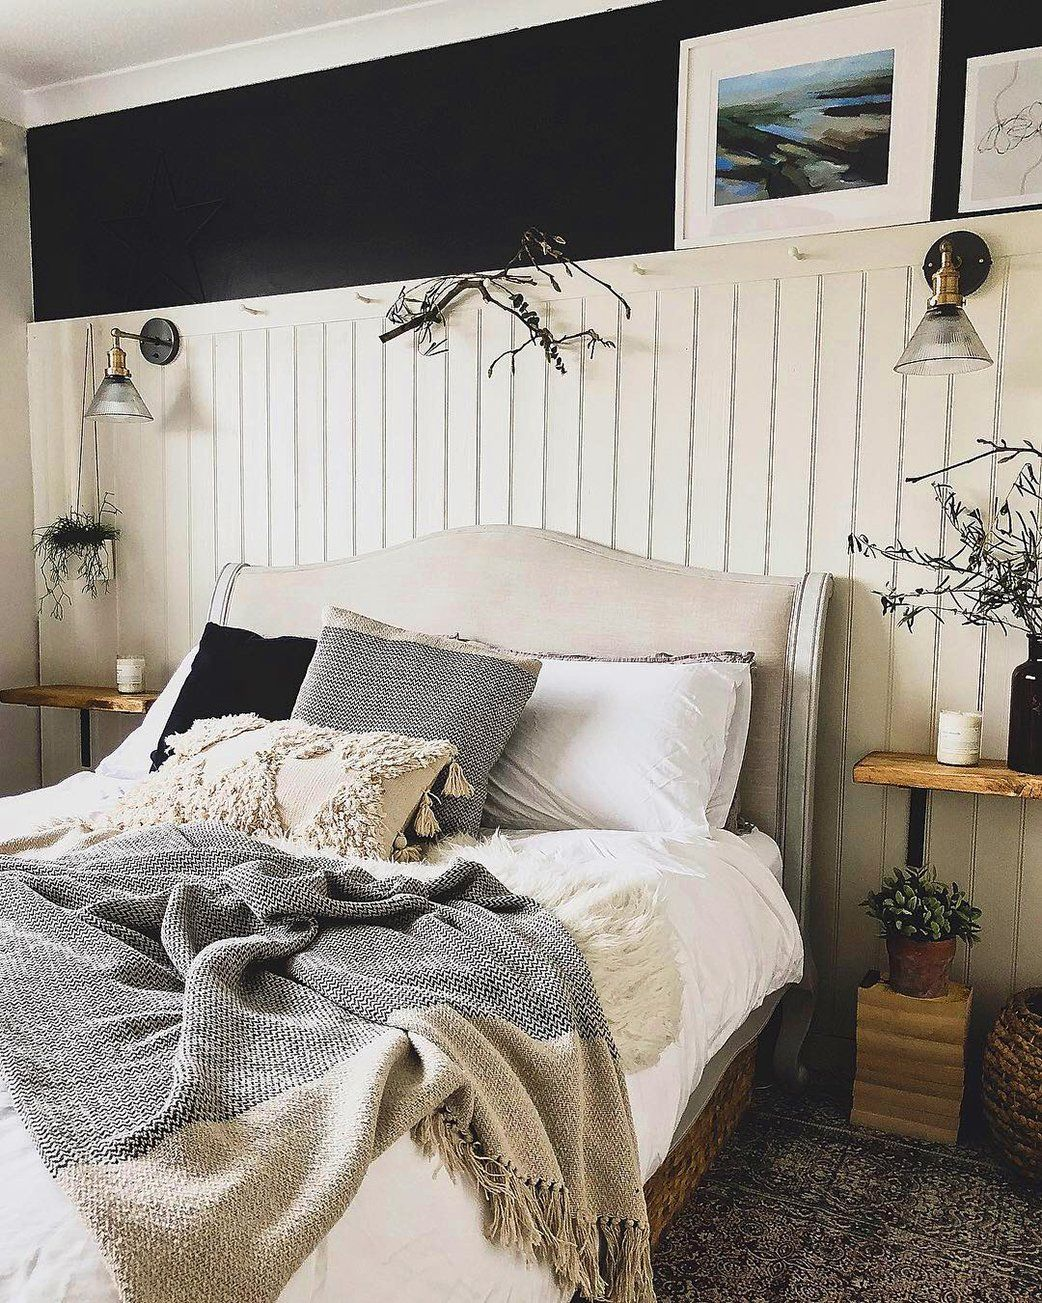 How To Achieve The Hygge Interior Trend In 8 Simple Steps ...